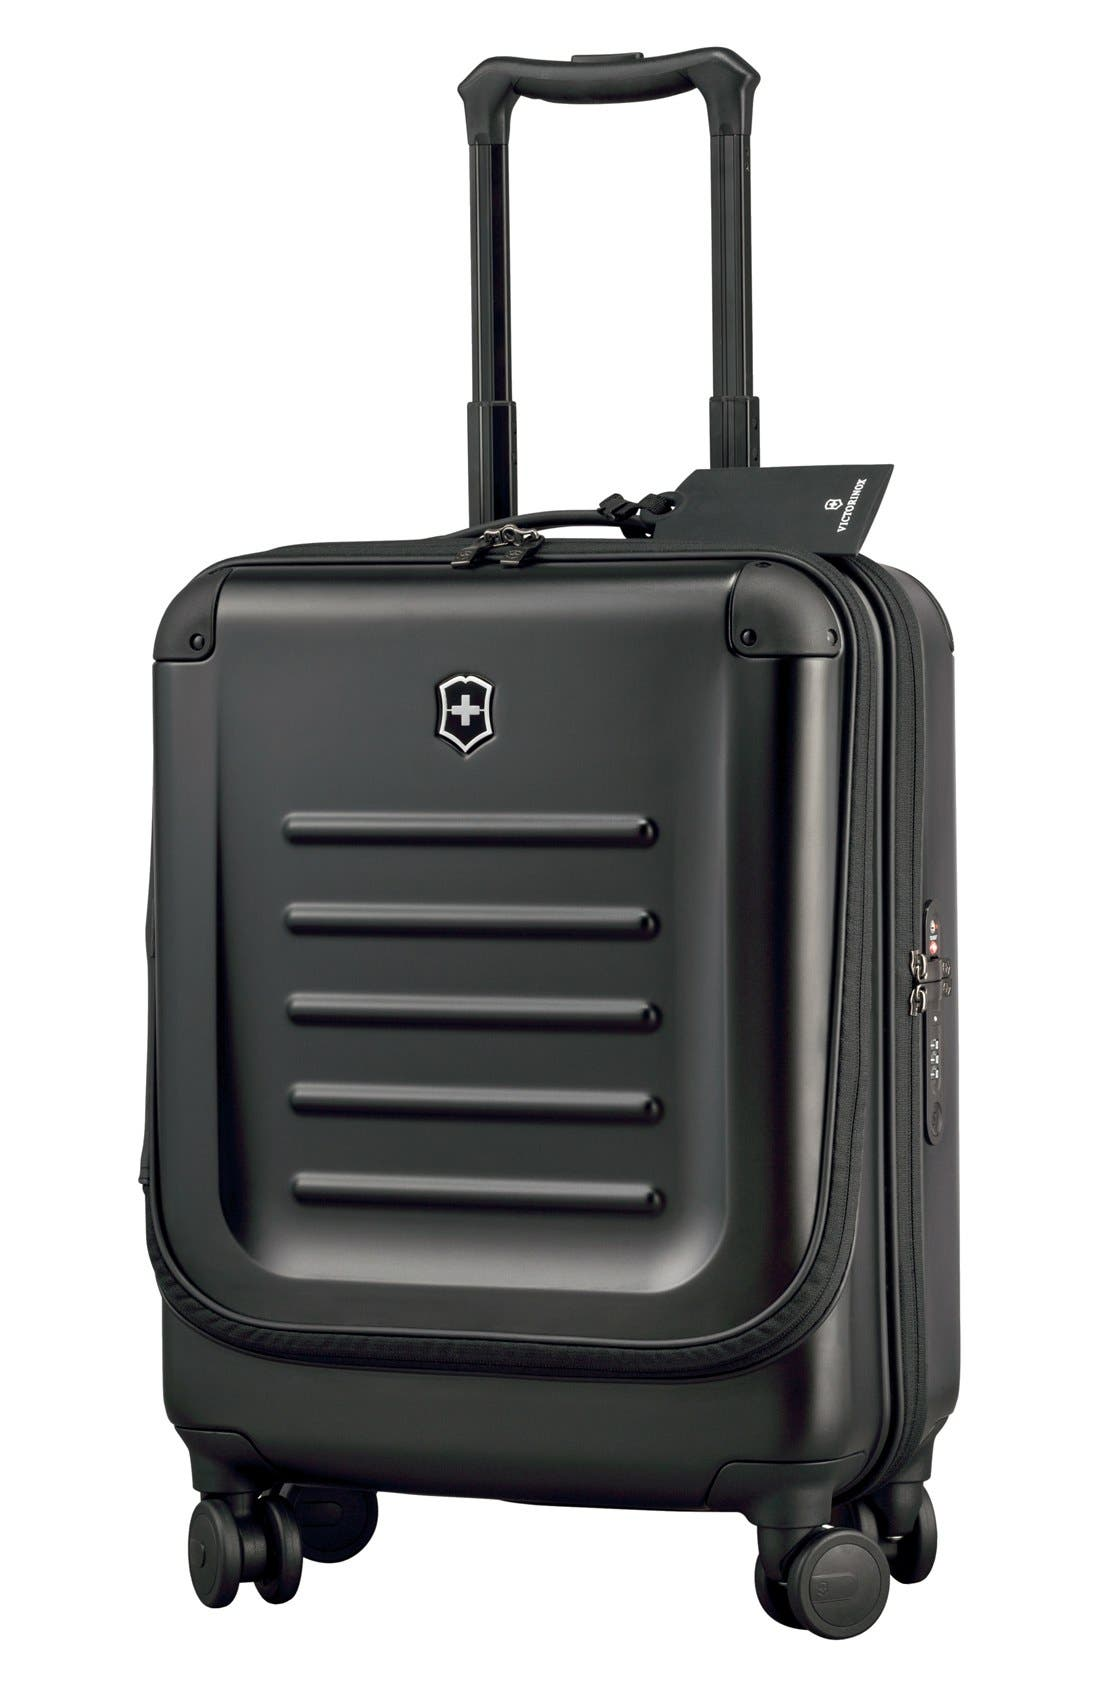 VICTORINOX SWISS ARMY<SUP>®</SUP> Spectra 2.0 Dual Access Global Hard Sided Rolling Carry-On